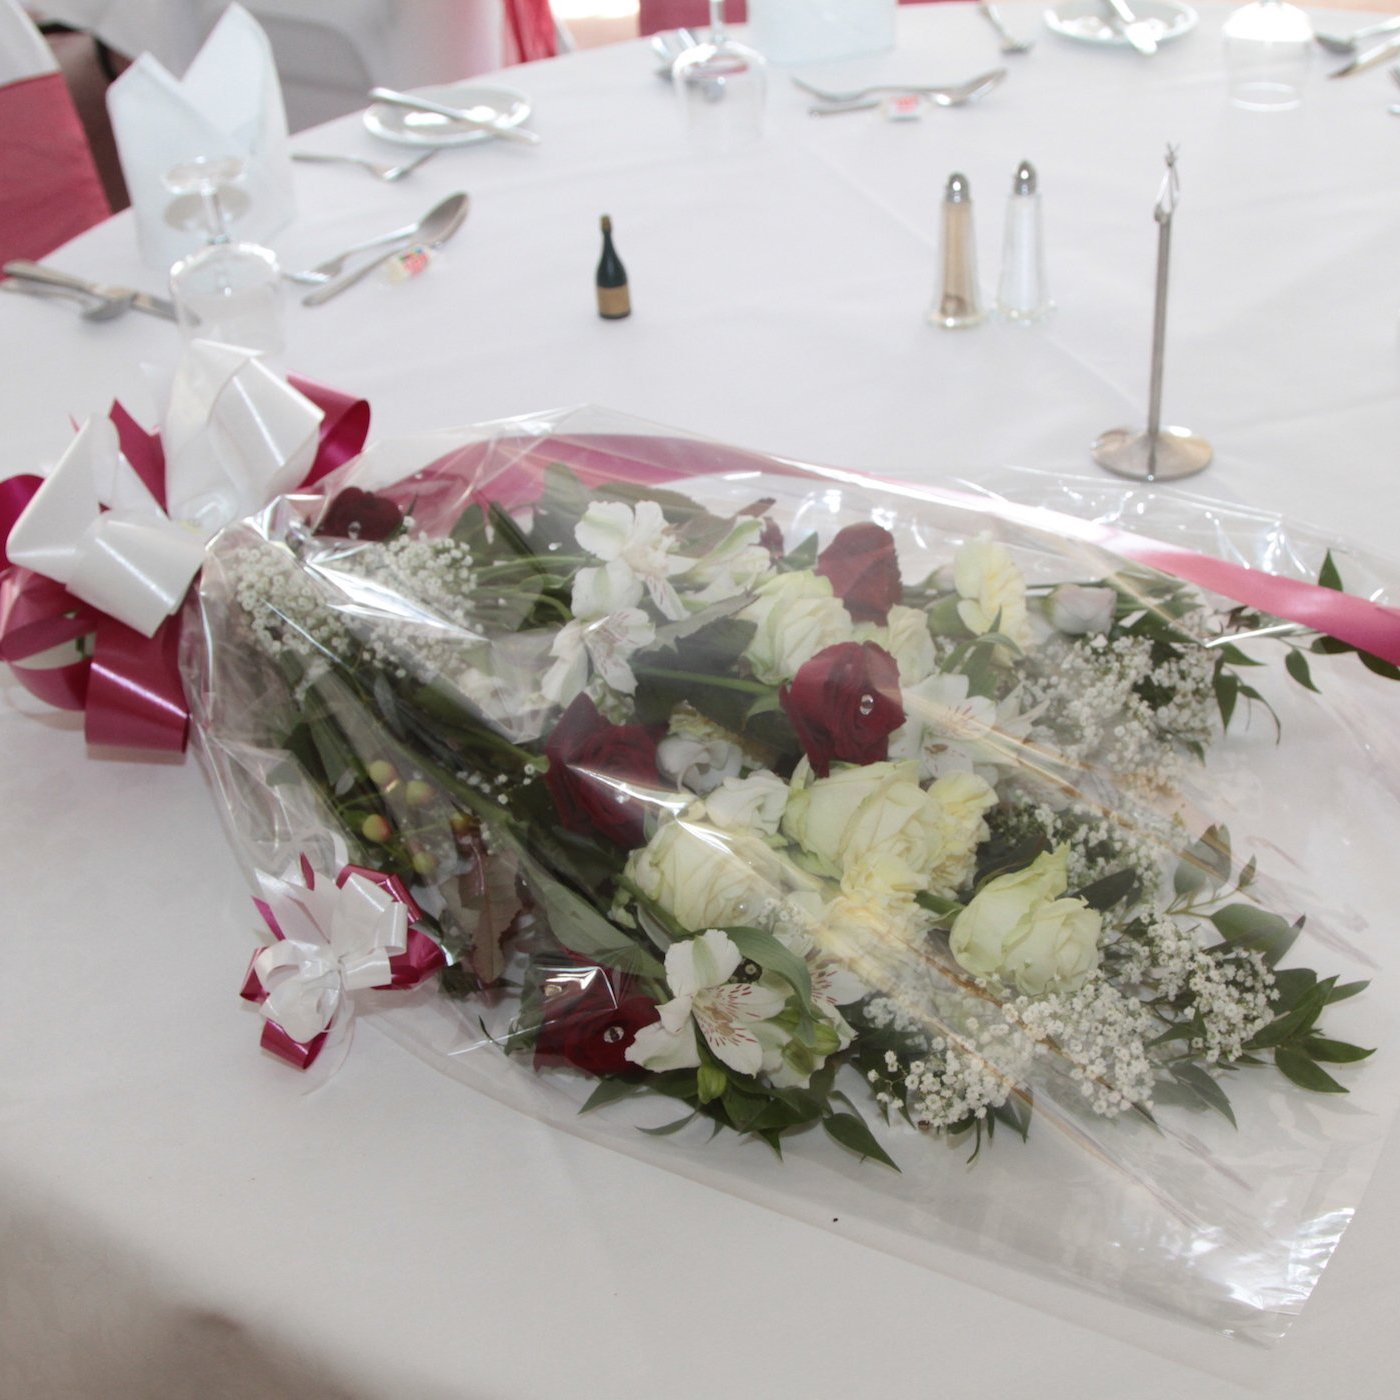 Wrapped bouquet bWrapped bouquet by Exeter florists Buds2Blossomy Exeter florists Buds2Blossom